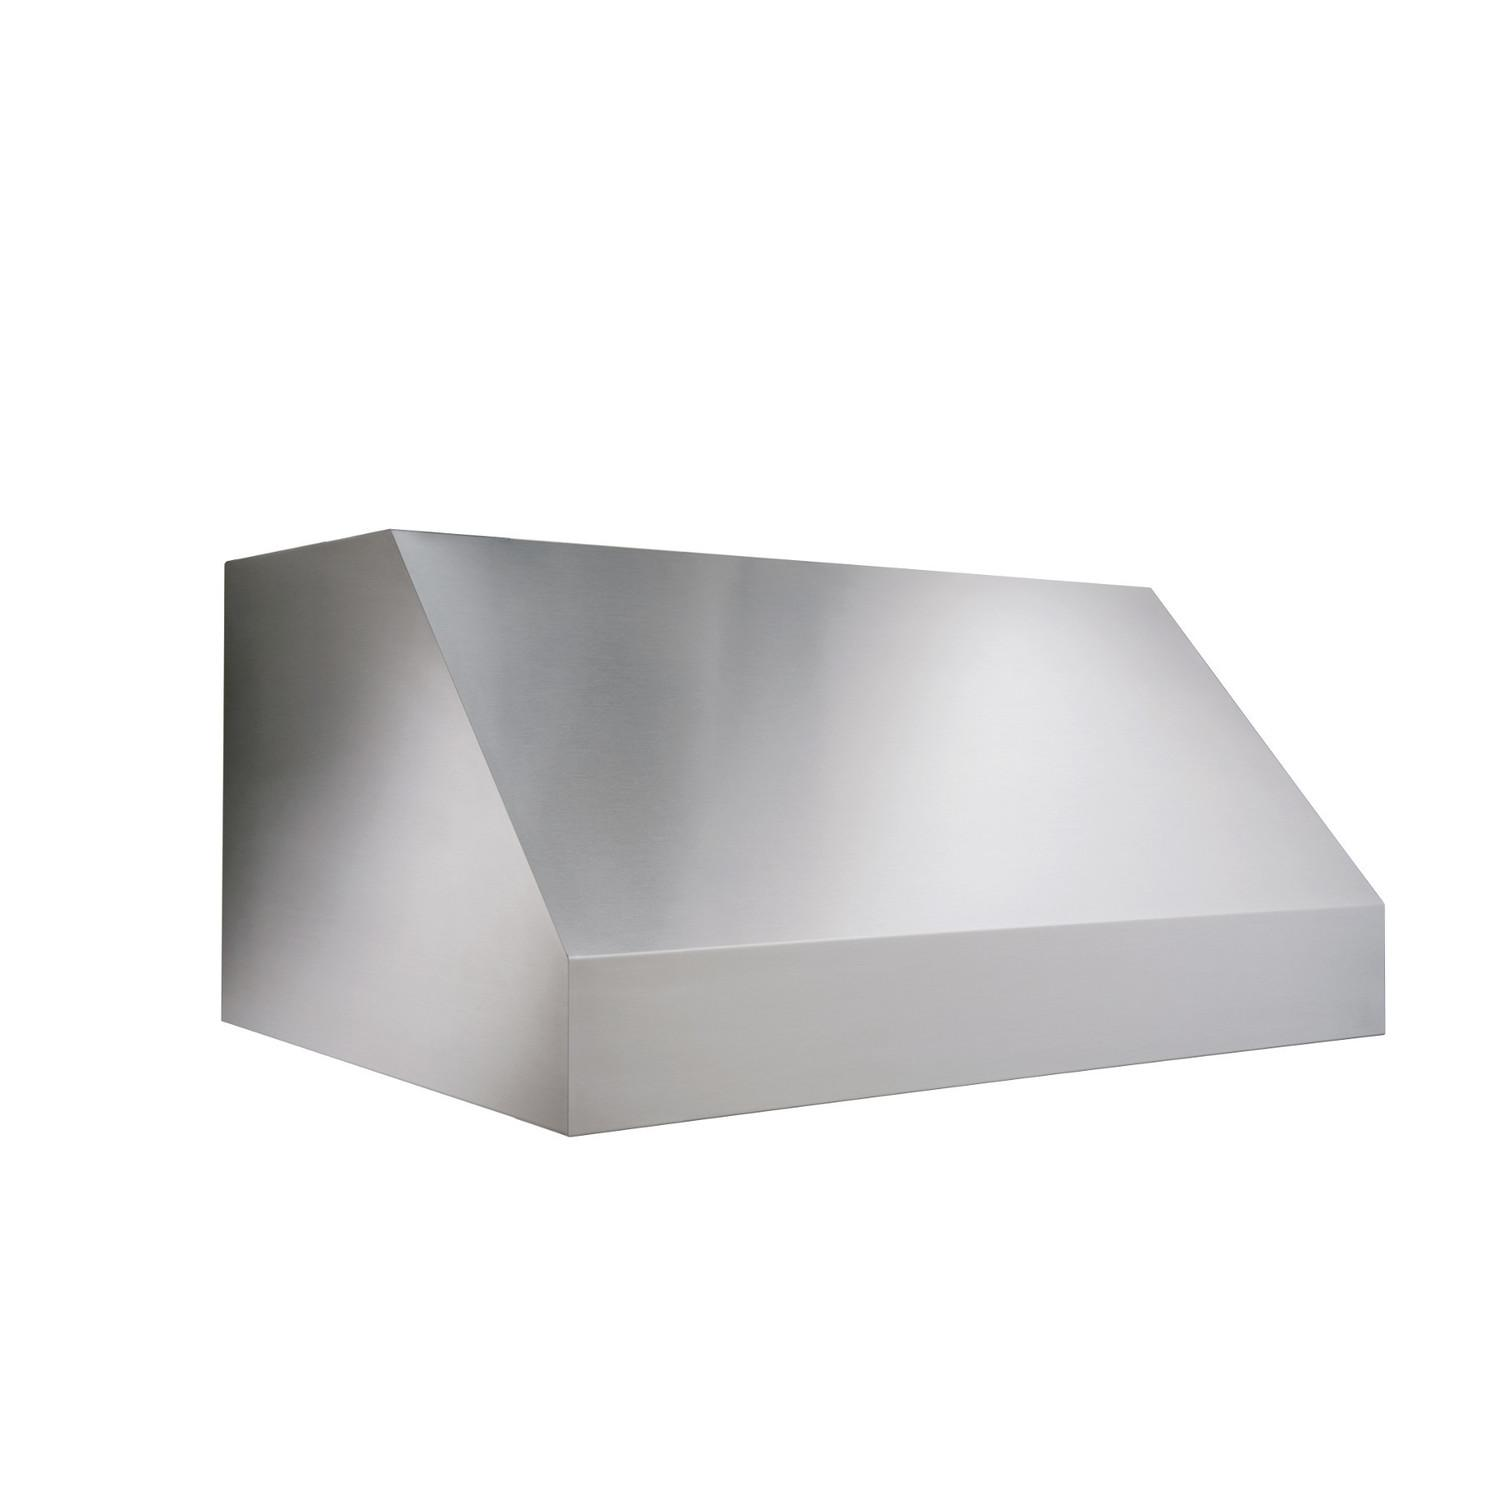 Broan® 36-Inch Pro-Style Outdoor Range Hood, 1100 CFM, Stainless Steel